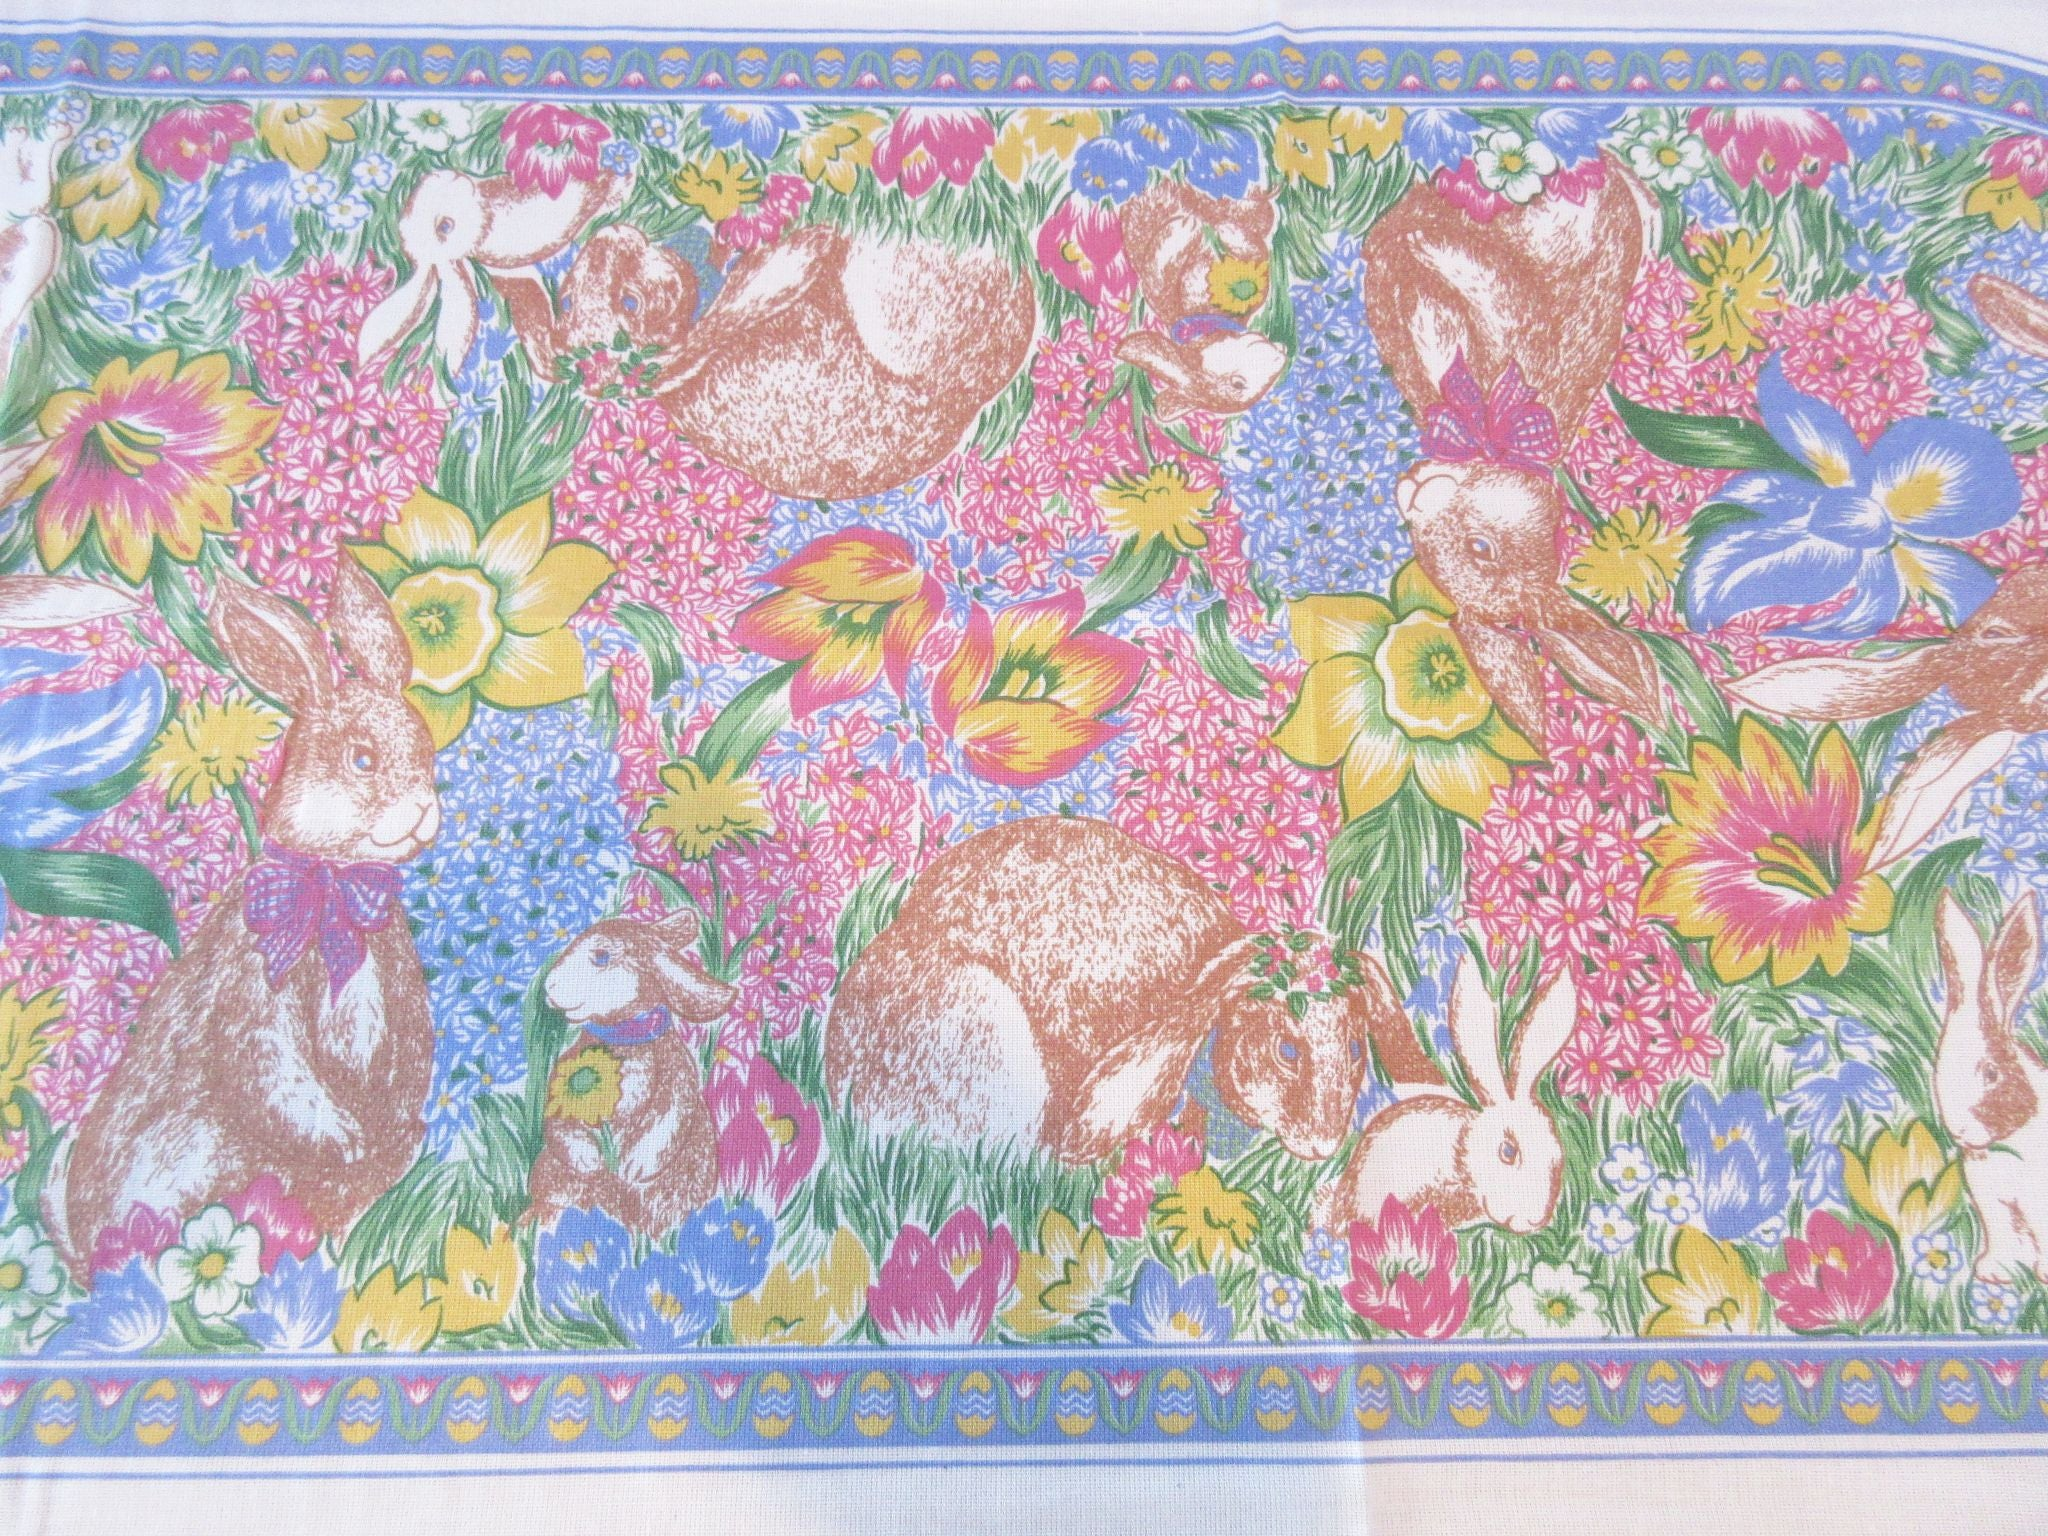 Easter Bunnies and Daffodils NOS Novelty Retro Printed Tablecloth (70 X 52)